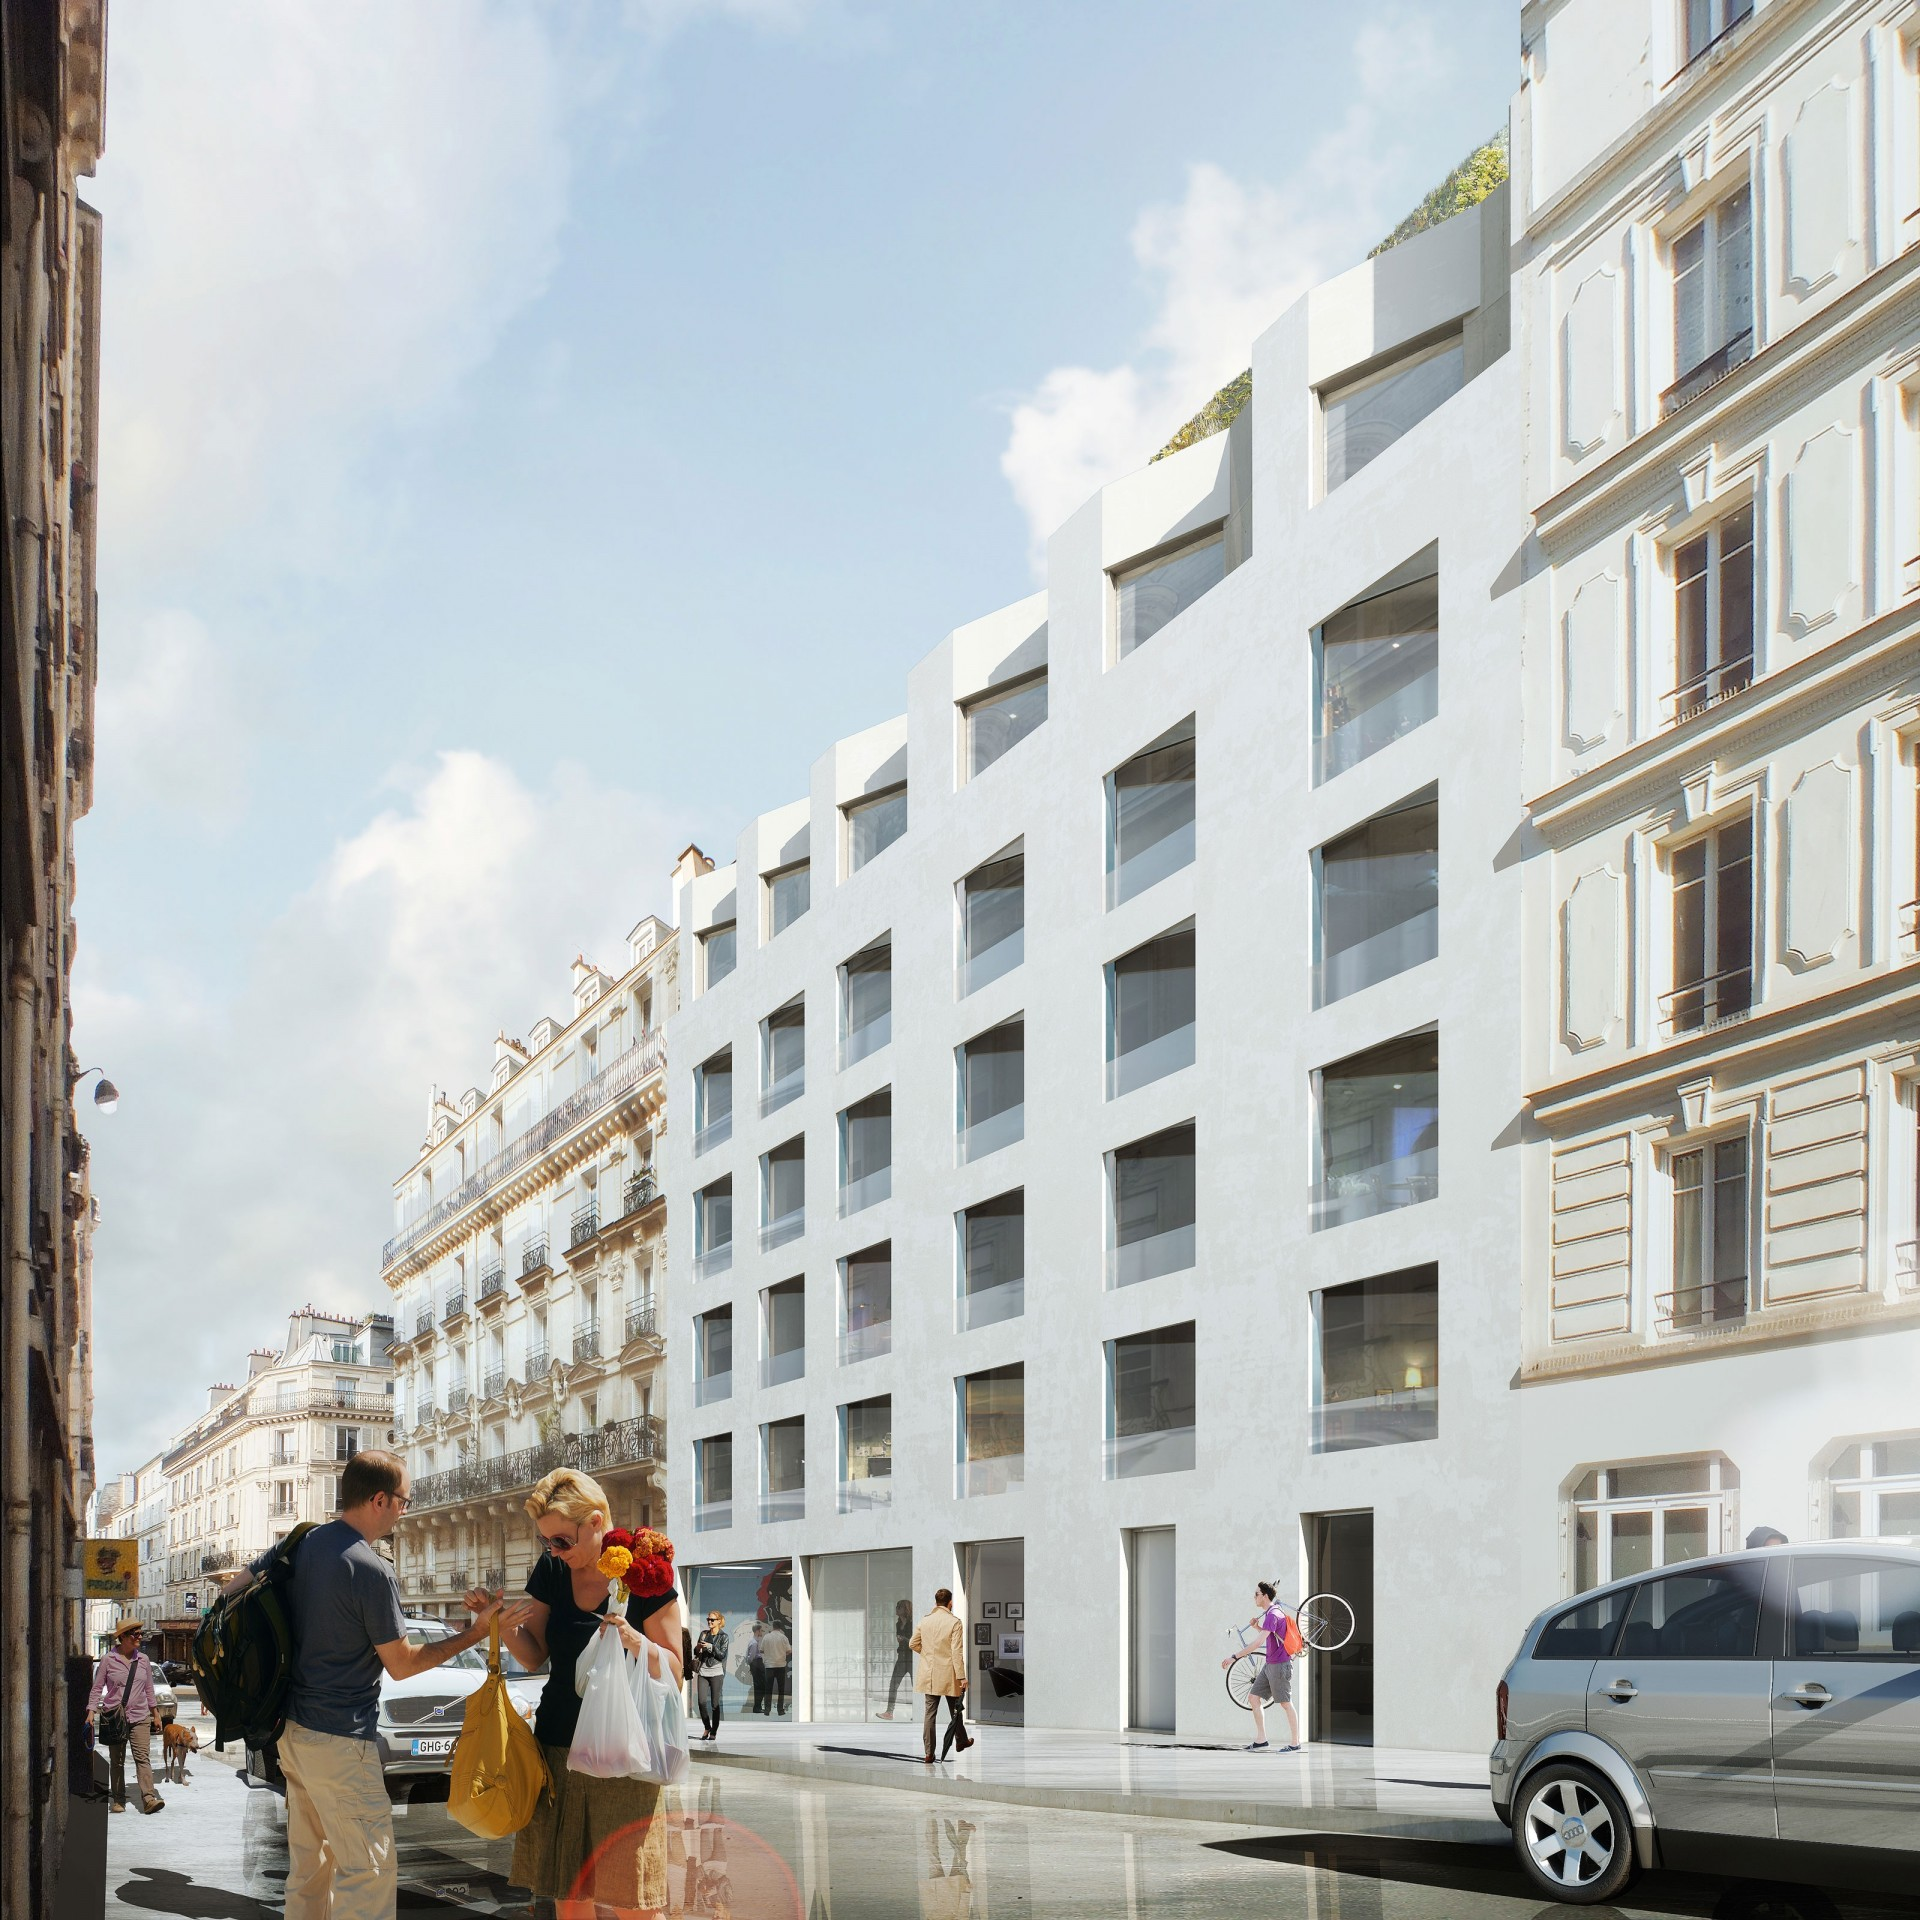 72 logements, Paris 17 - Agence Catherine Dormoy Architectes